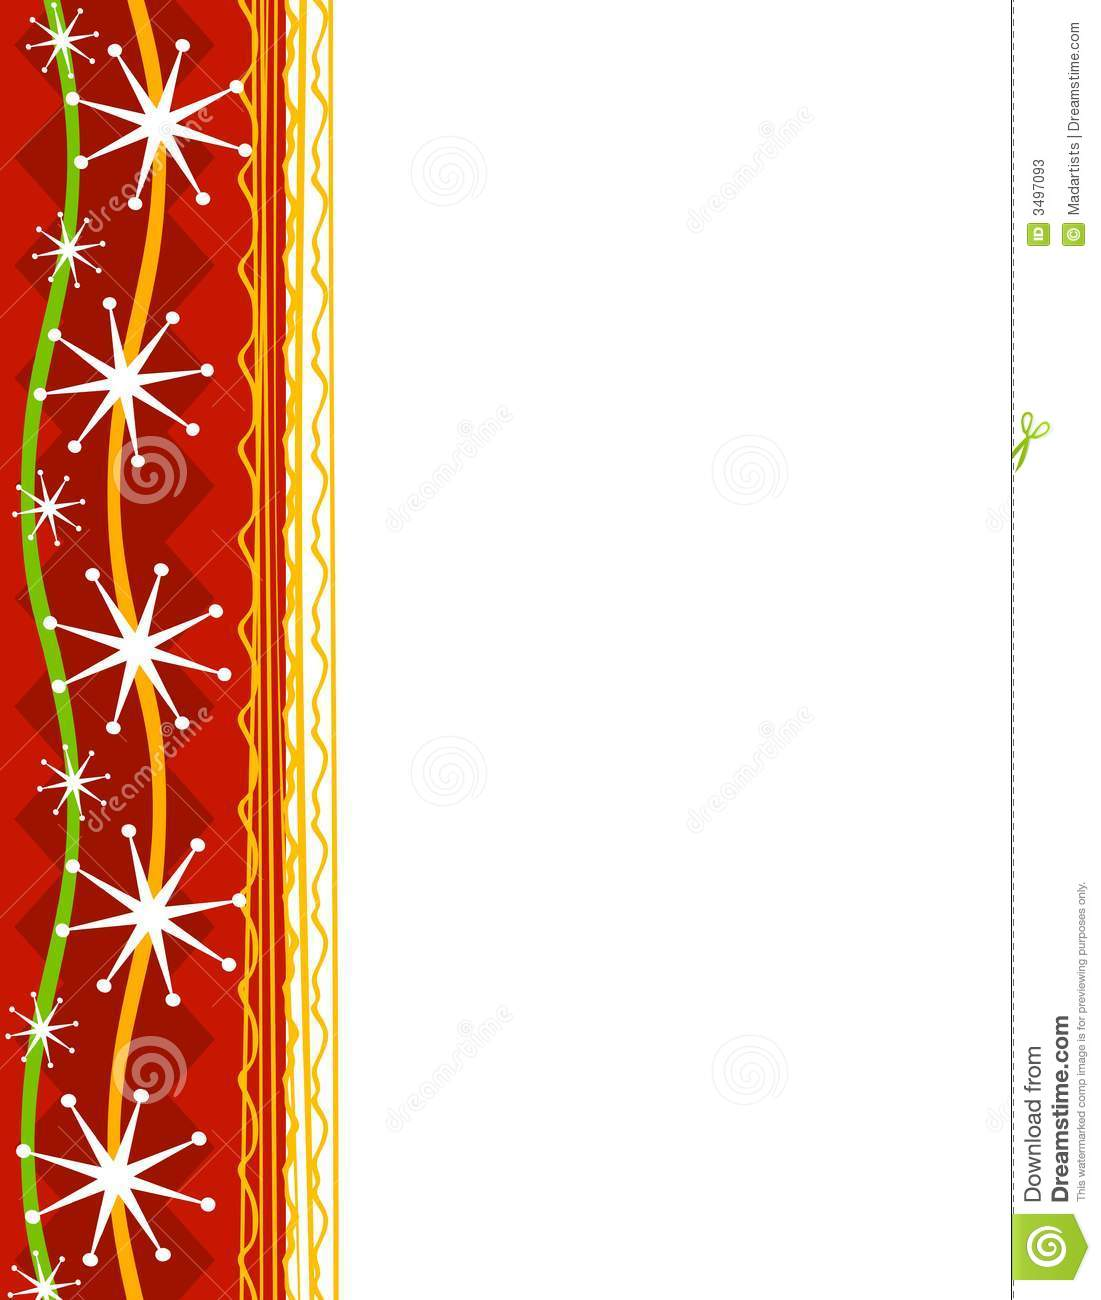 Free christmas clipart borders free download best free christmas 1101x1300 page border clip art for christmas fun for christmas publicscrutiny Image collections